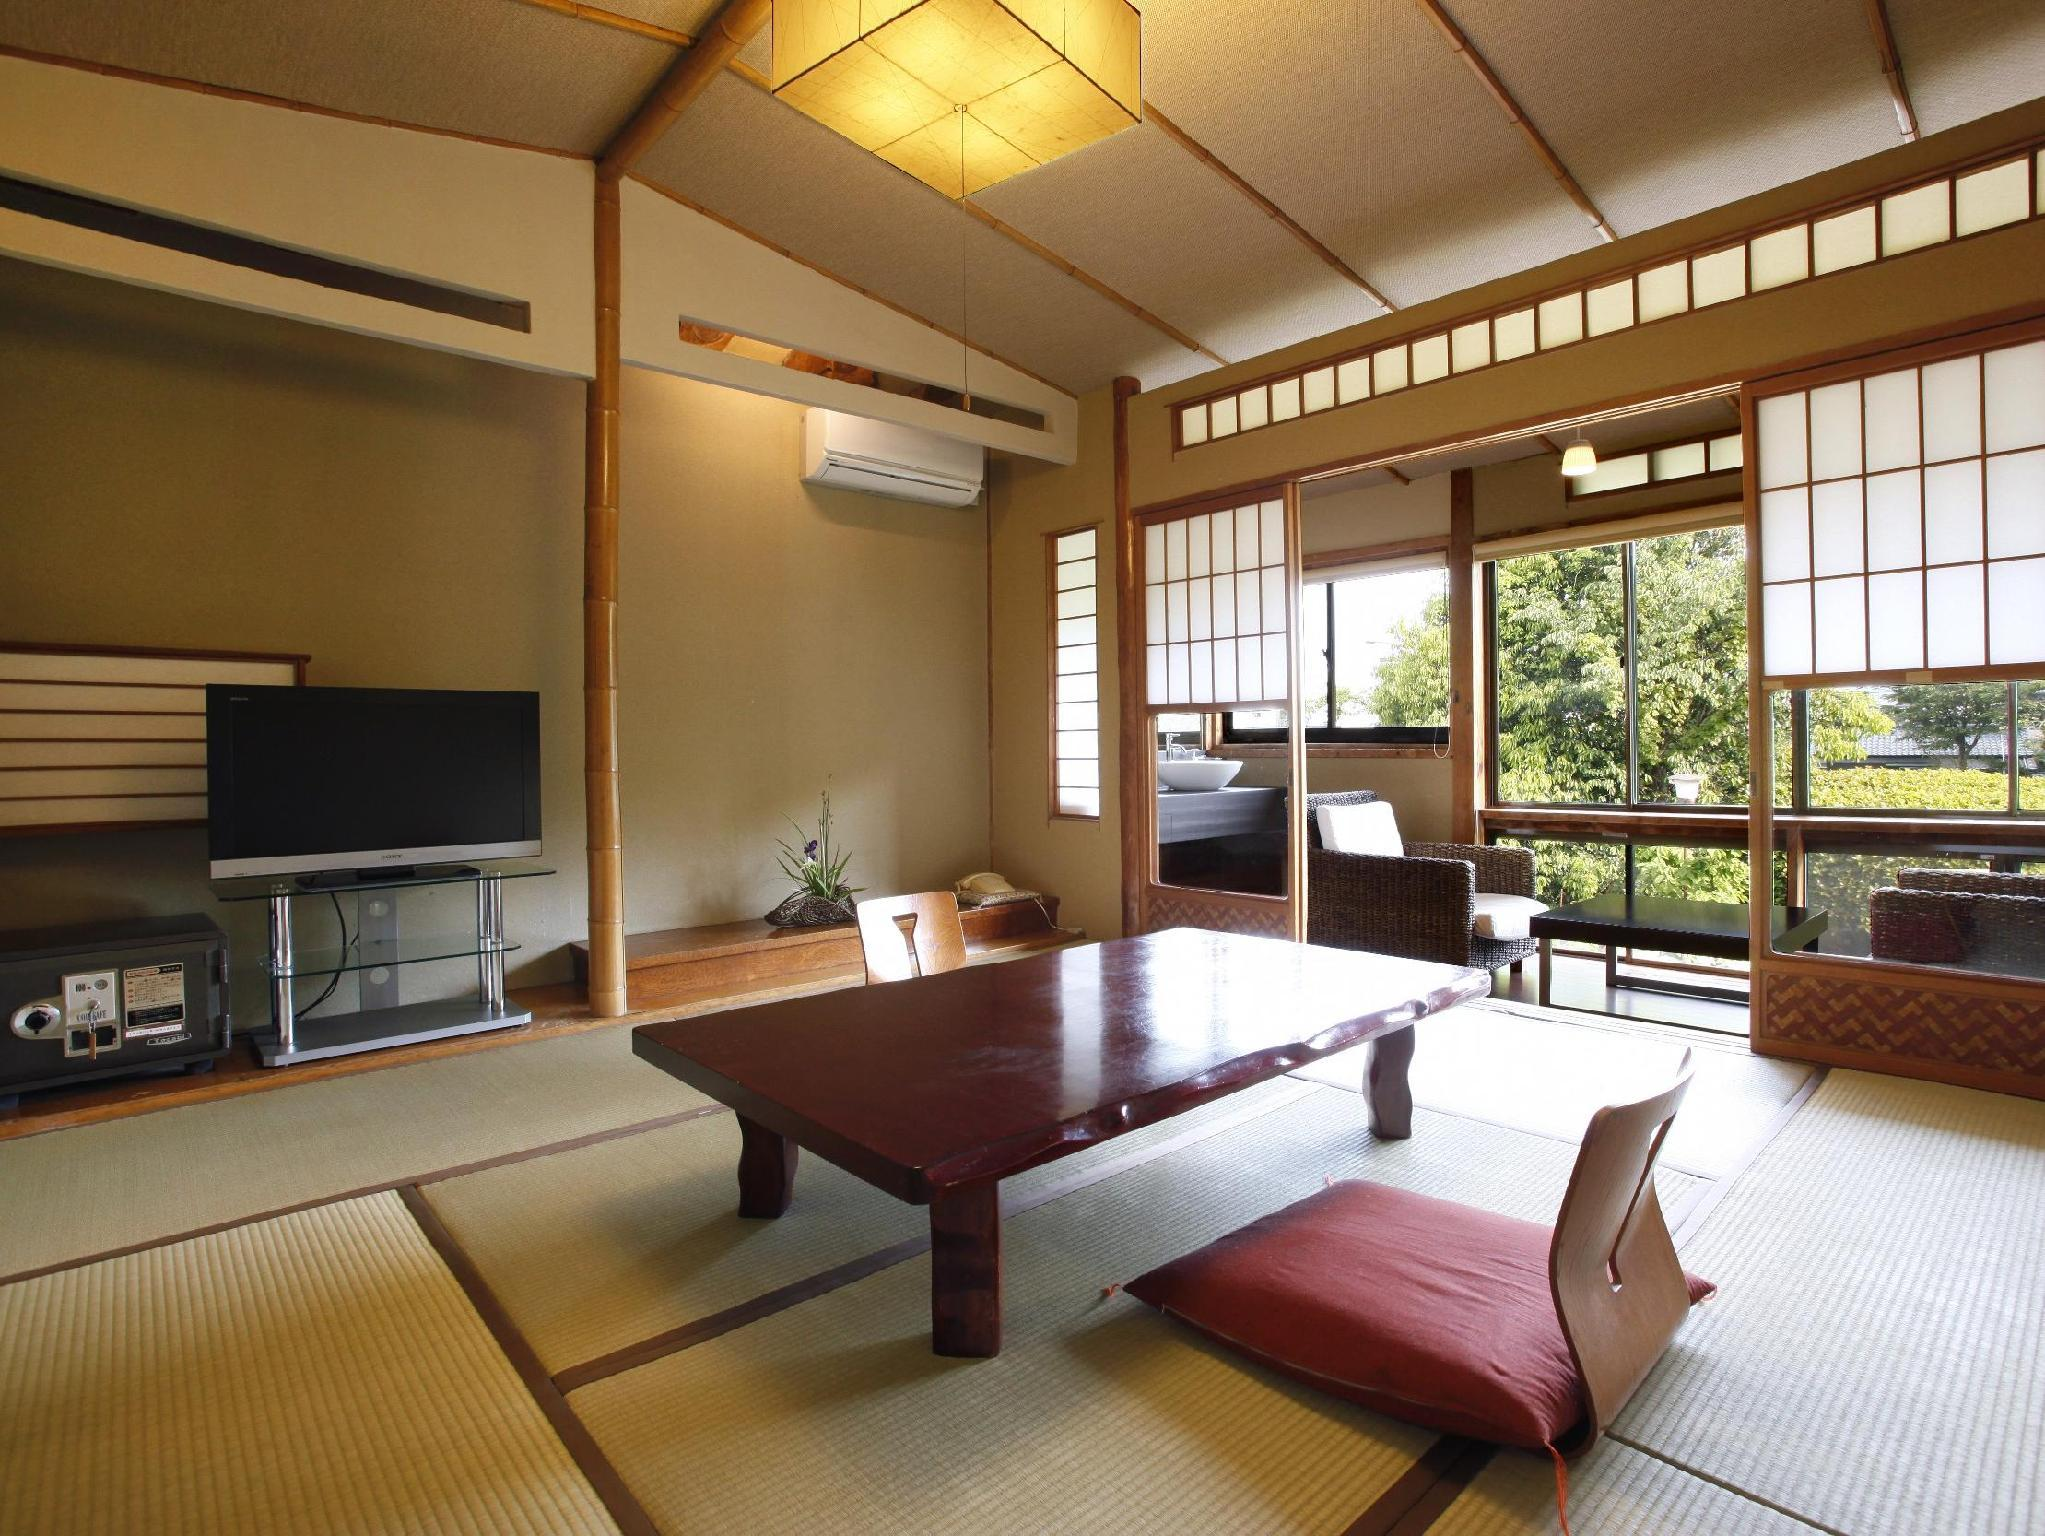 日式客房 - 需共用衛浴 (Japanese Style Room with Shared Bathroom)